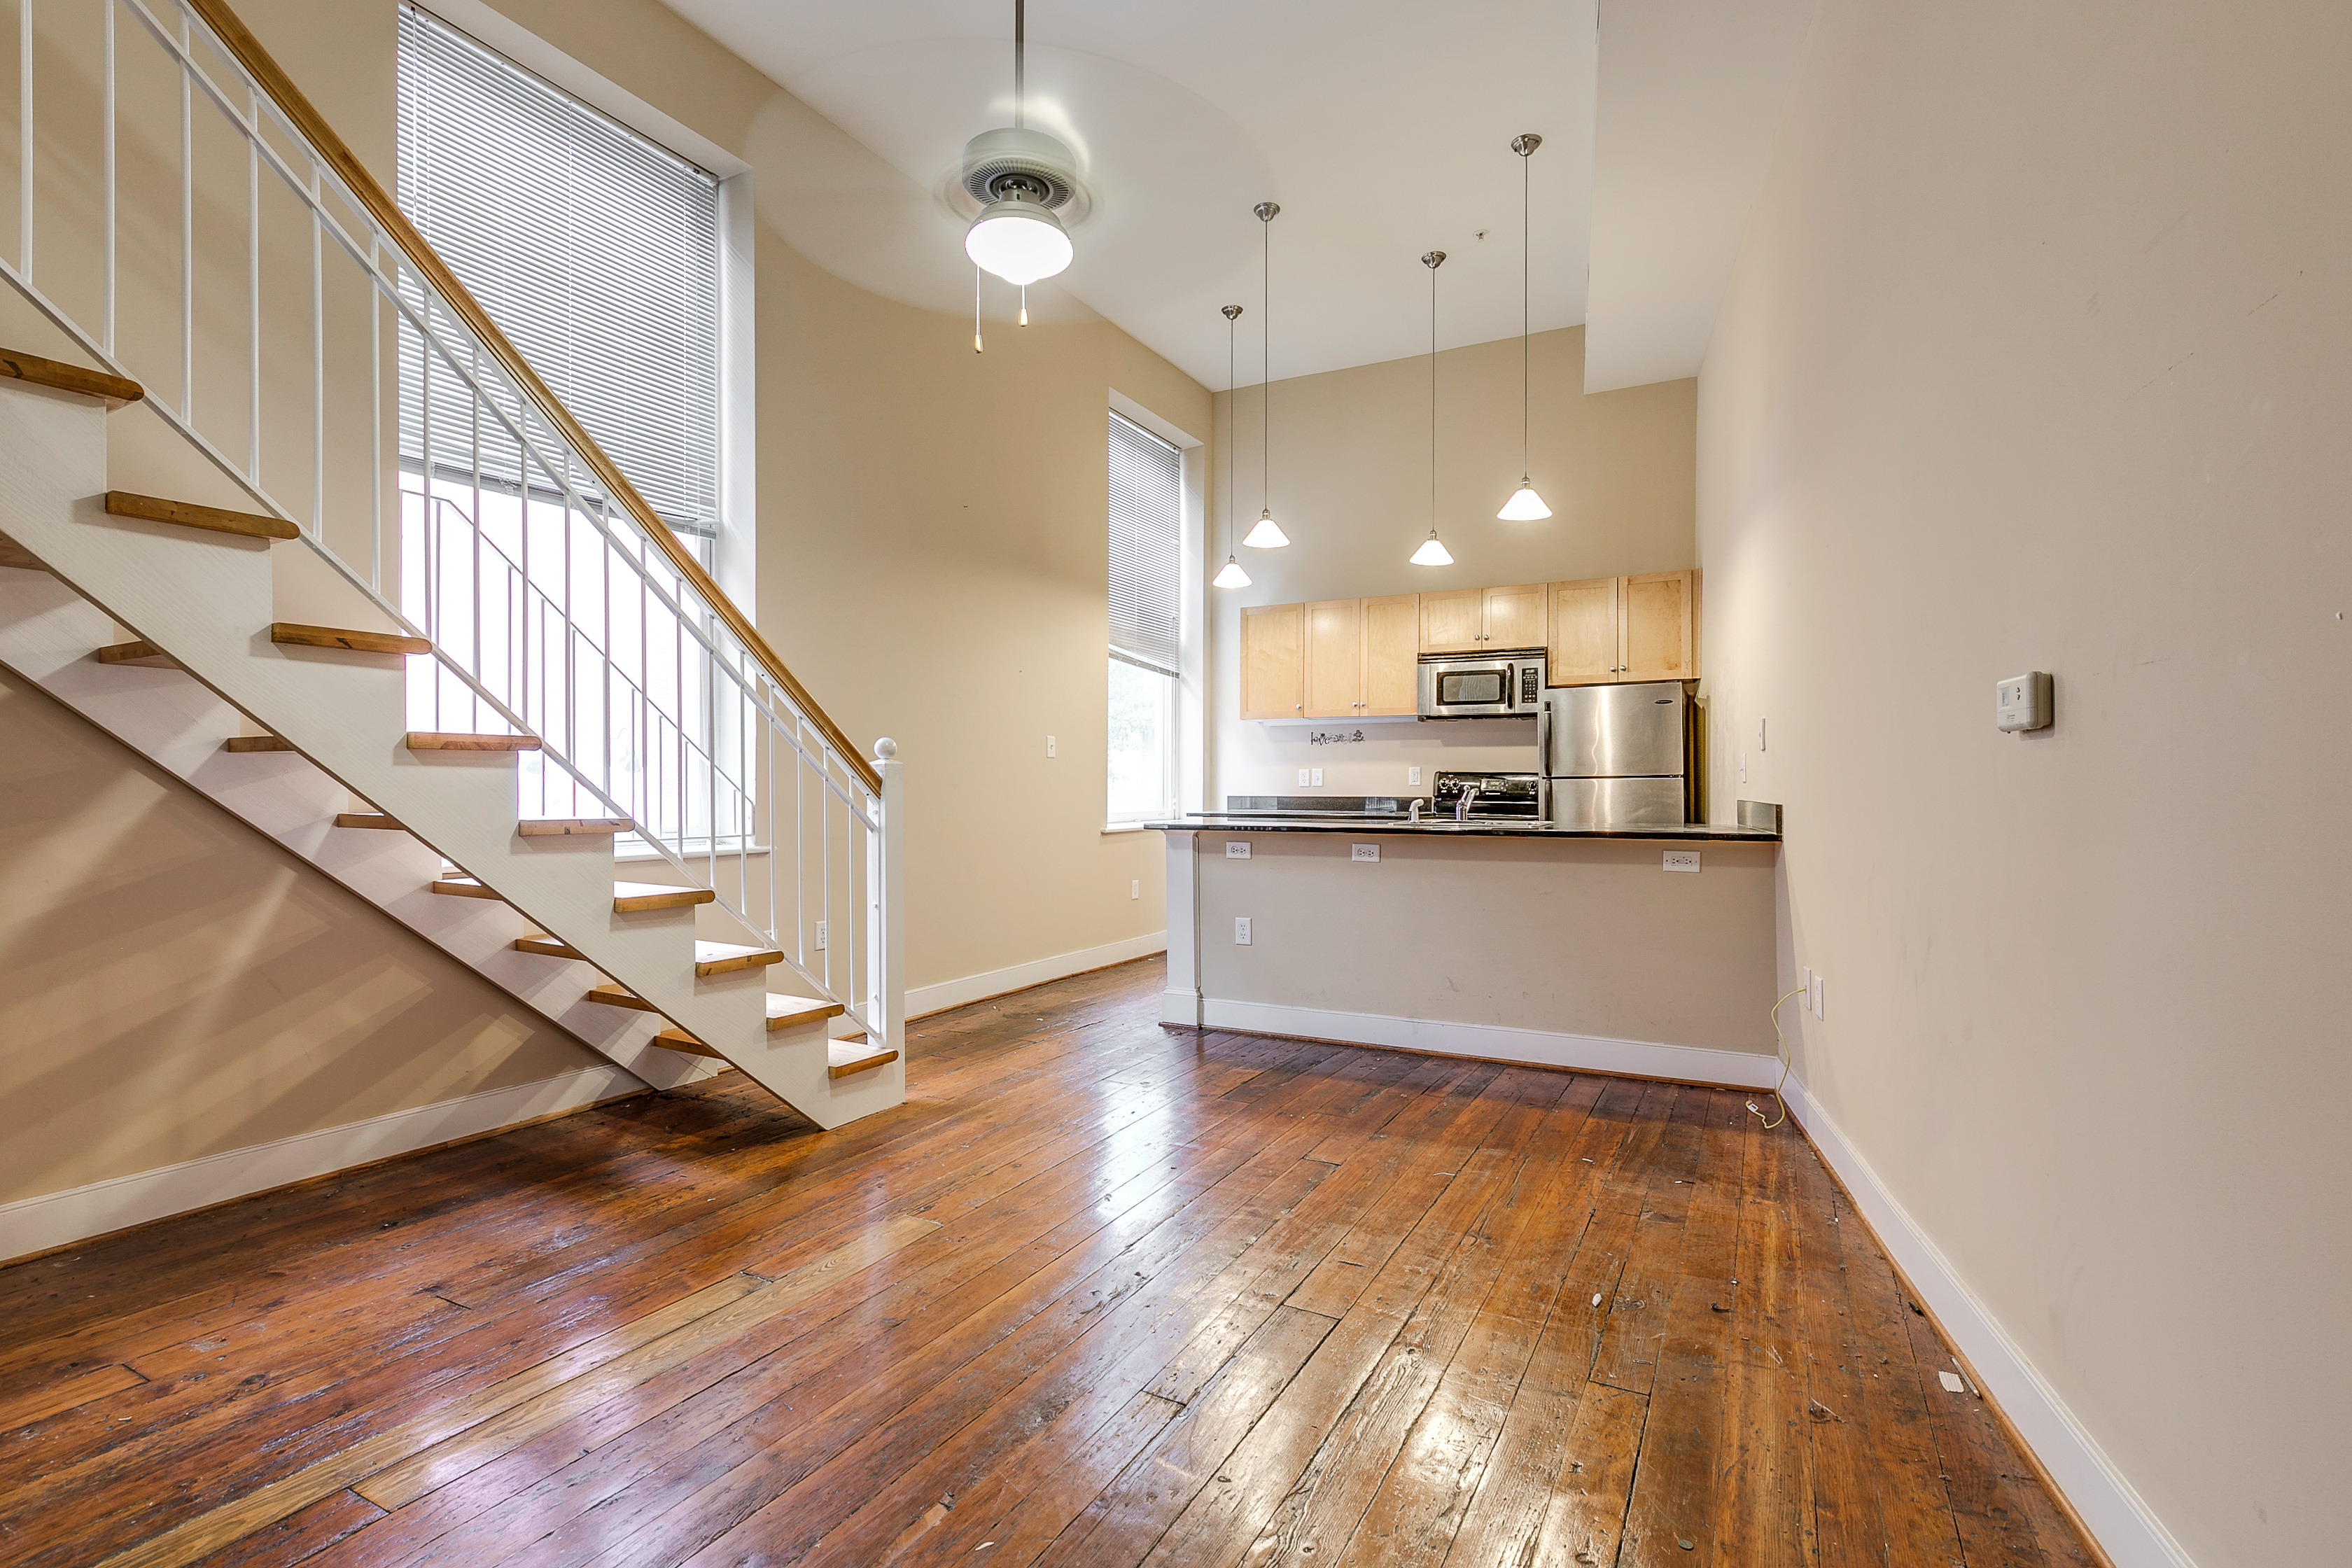 High Ceilings, Kitchen Counter Seating And Staircase To Upper Loft